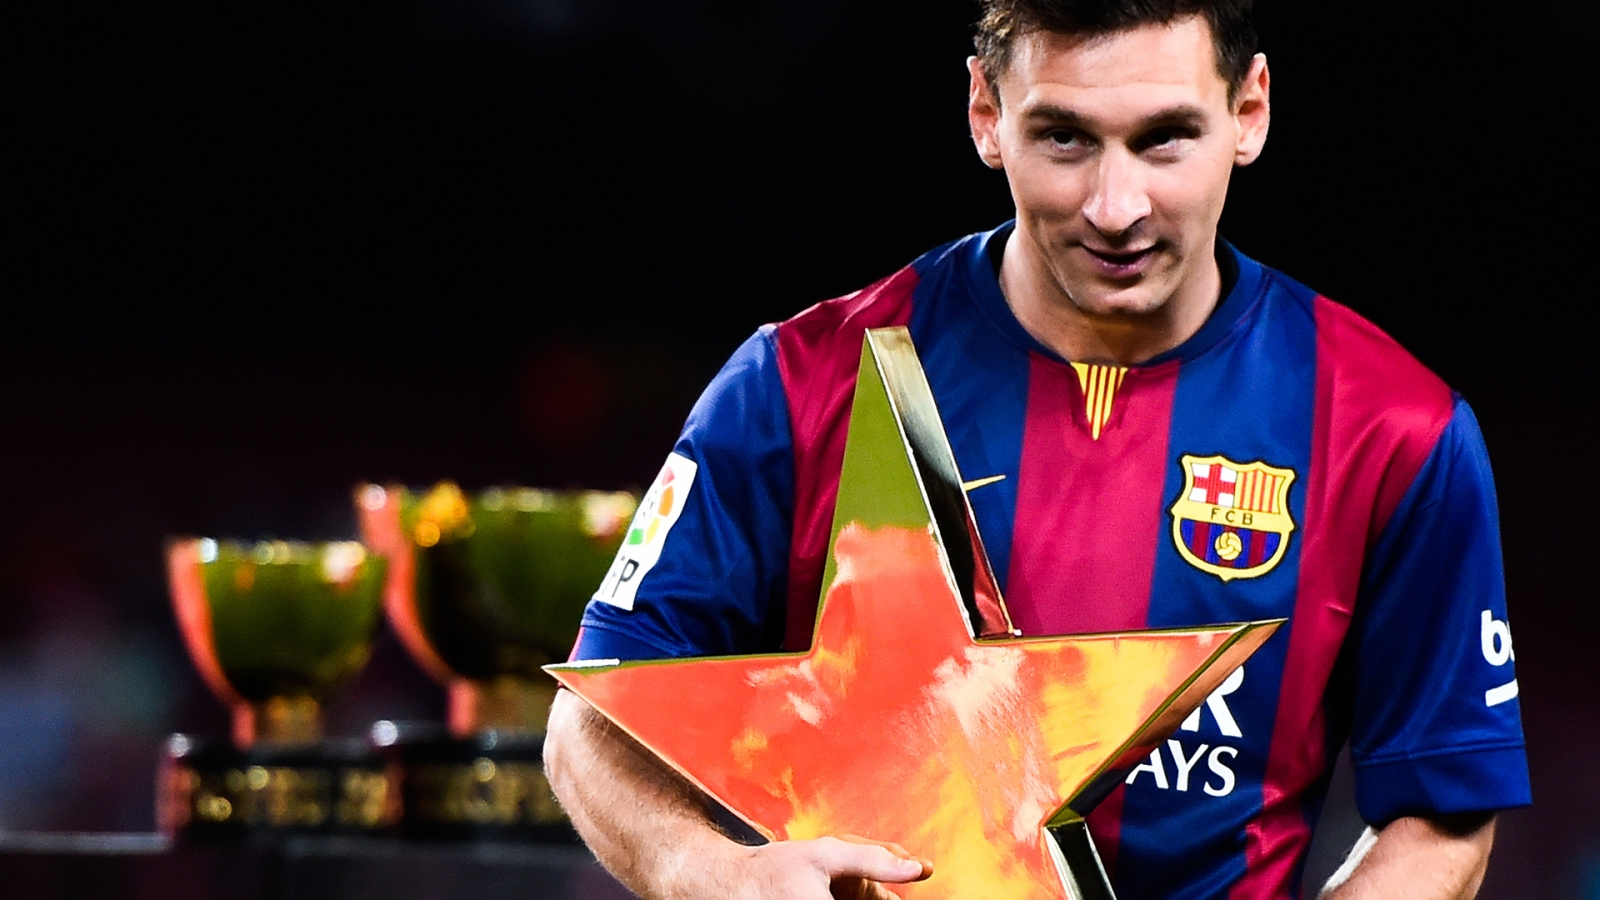 Messi Star Shaped Award for 1600 x 900 HDTV resolution